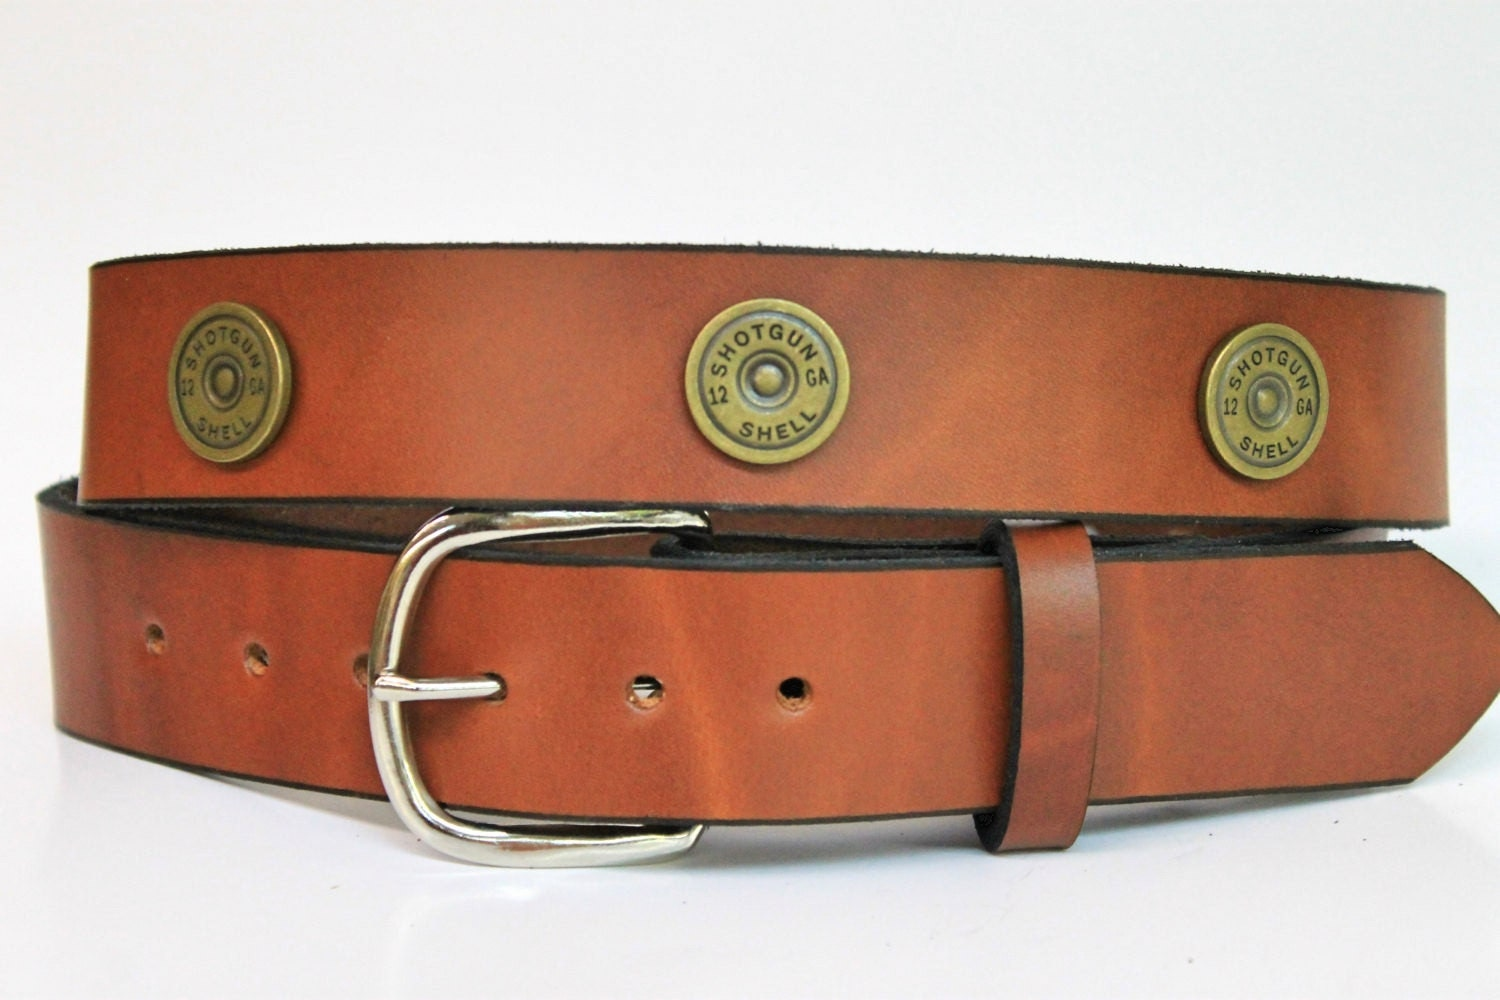 handcrafted leather belt with shotgun shells